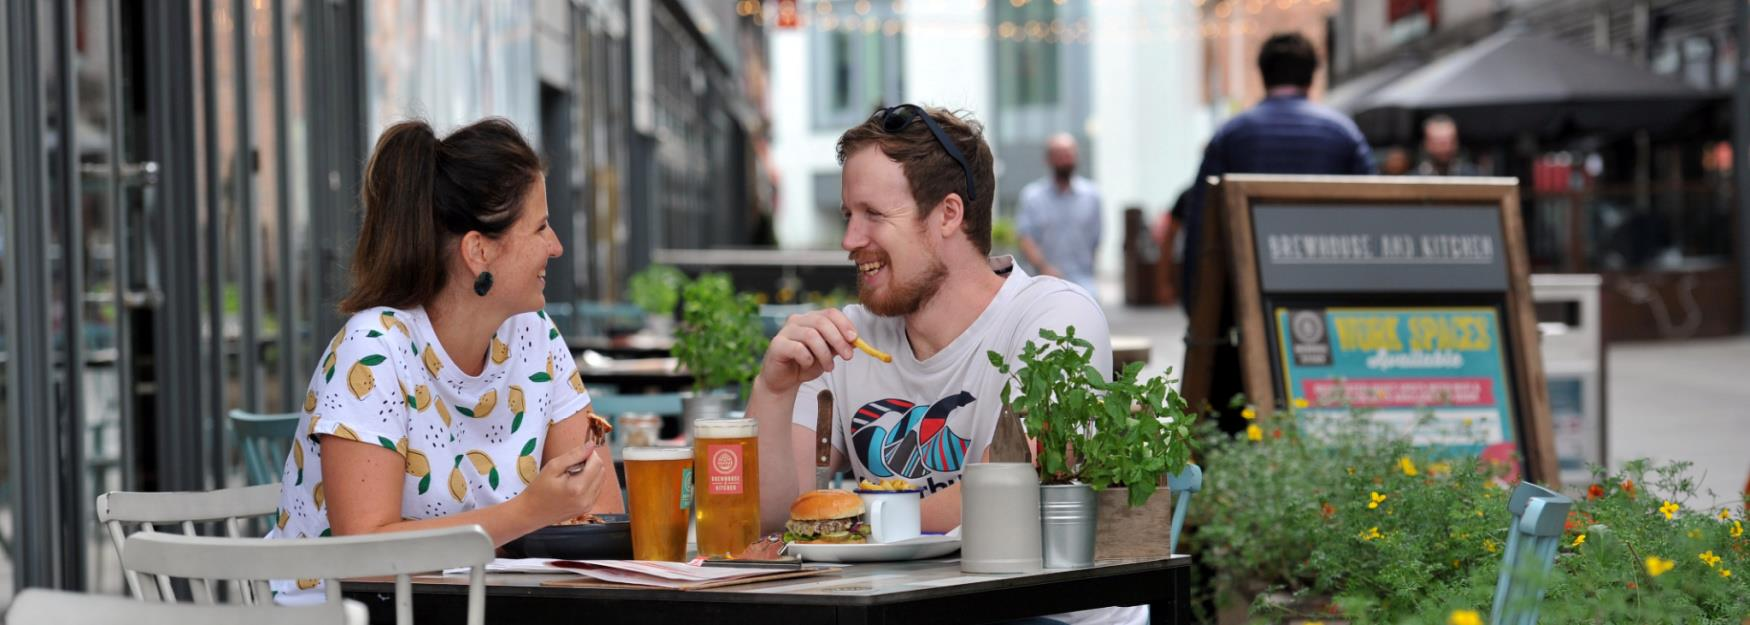 The Brewhouse & Kitchen - One of the many places to eat outdoors in Cheltenham.